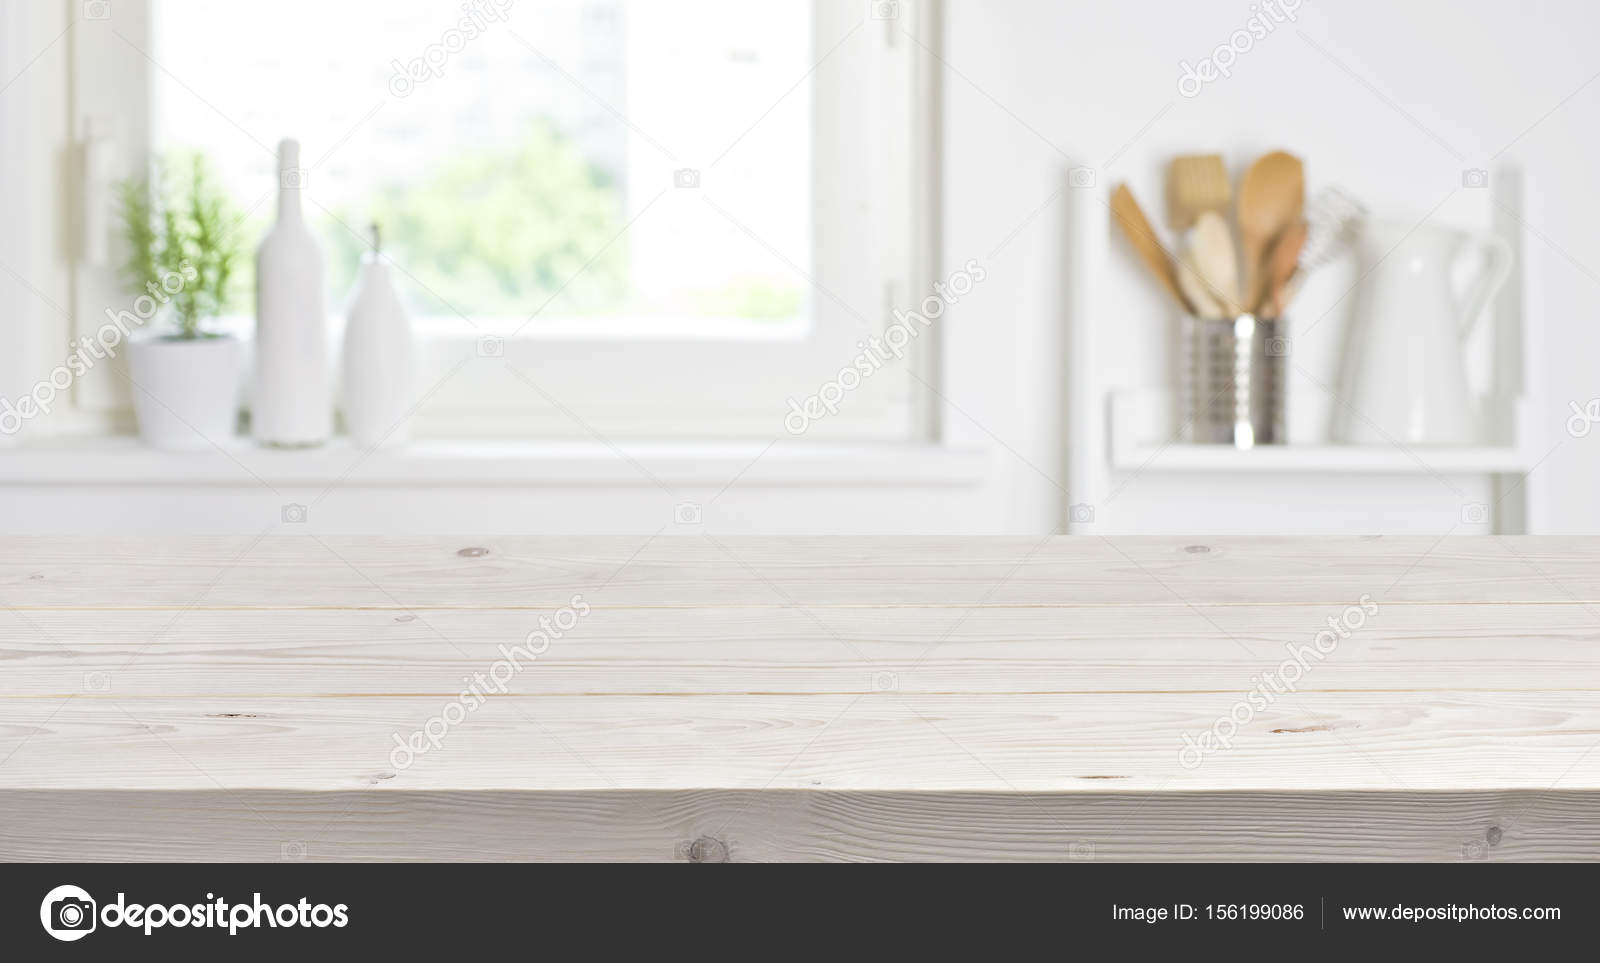 Wooden Table On Blurred Background Of Kitchen Window And Shelves Stock Photo C Didecs 156199086